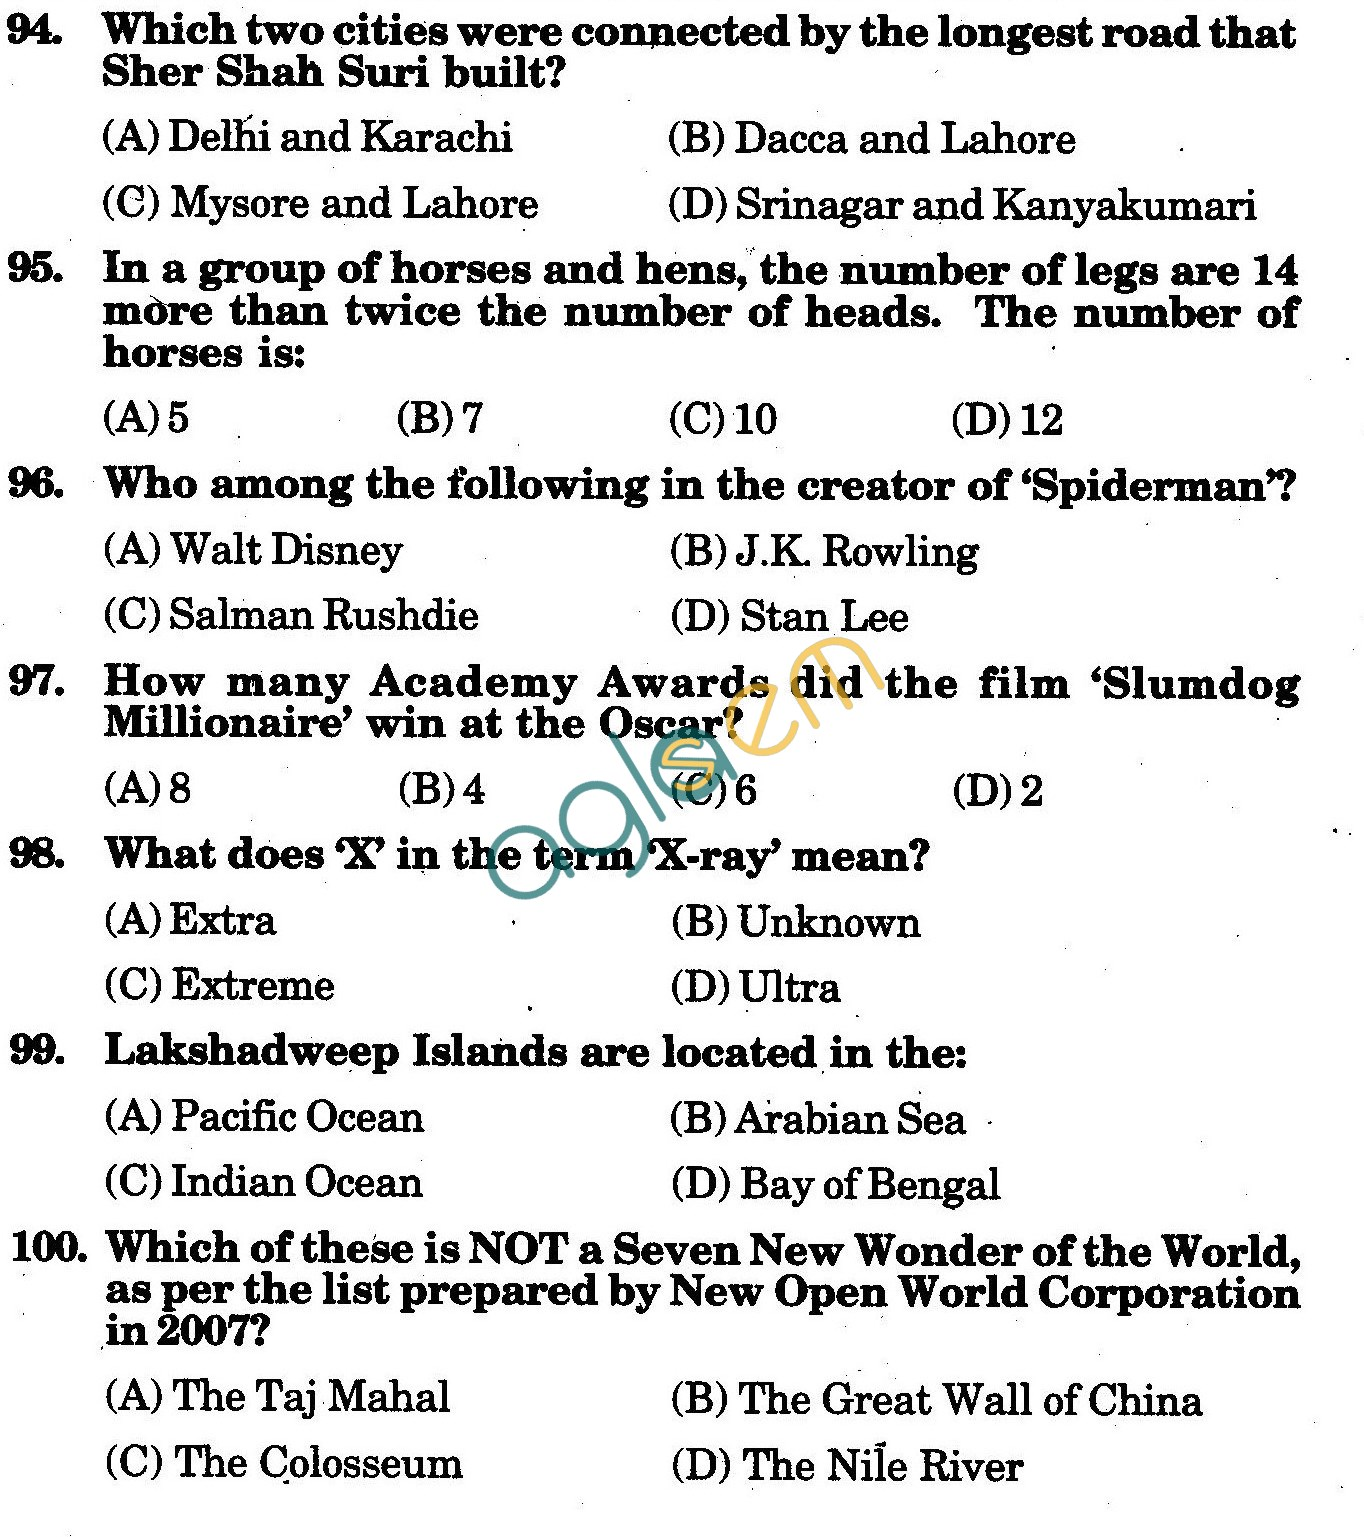 NSTSE 2010 Class VIII Question Paper with Answers - General Knowledge